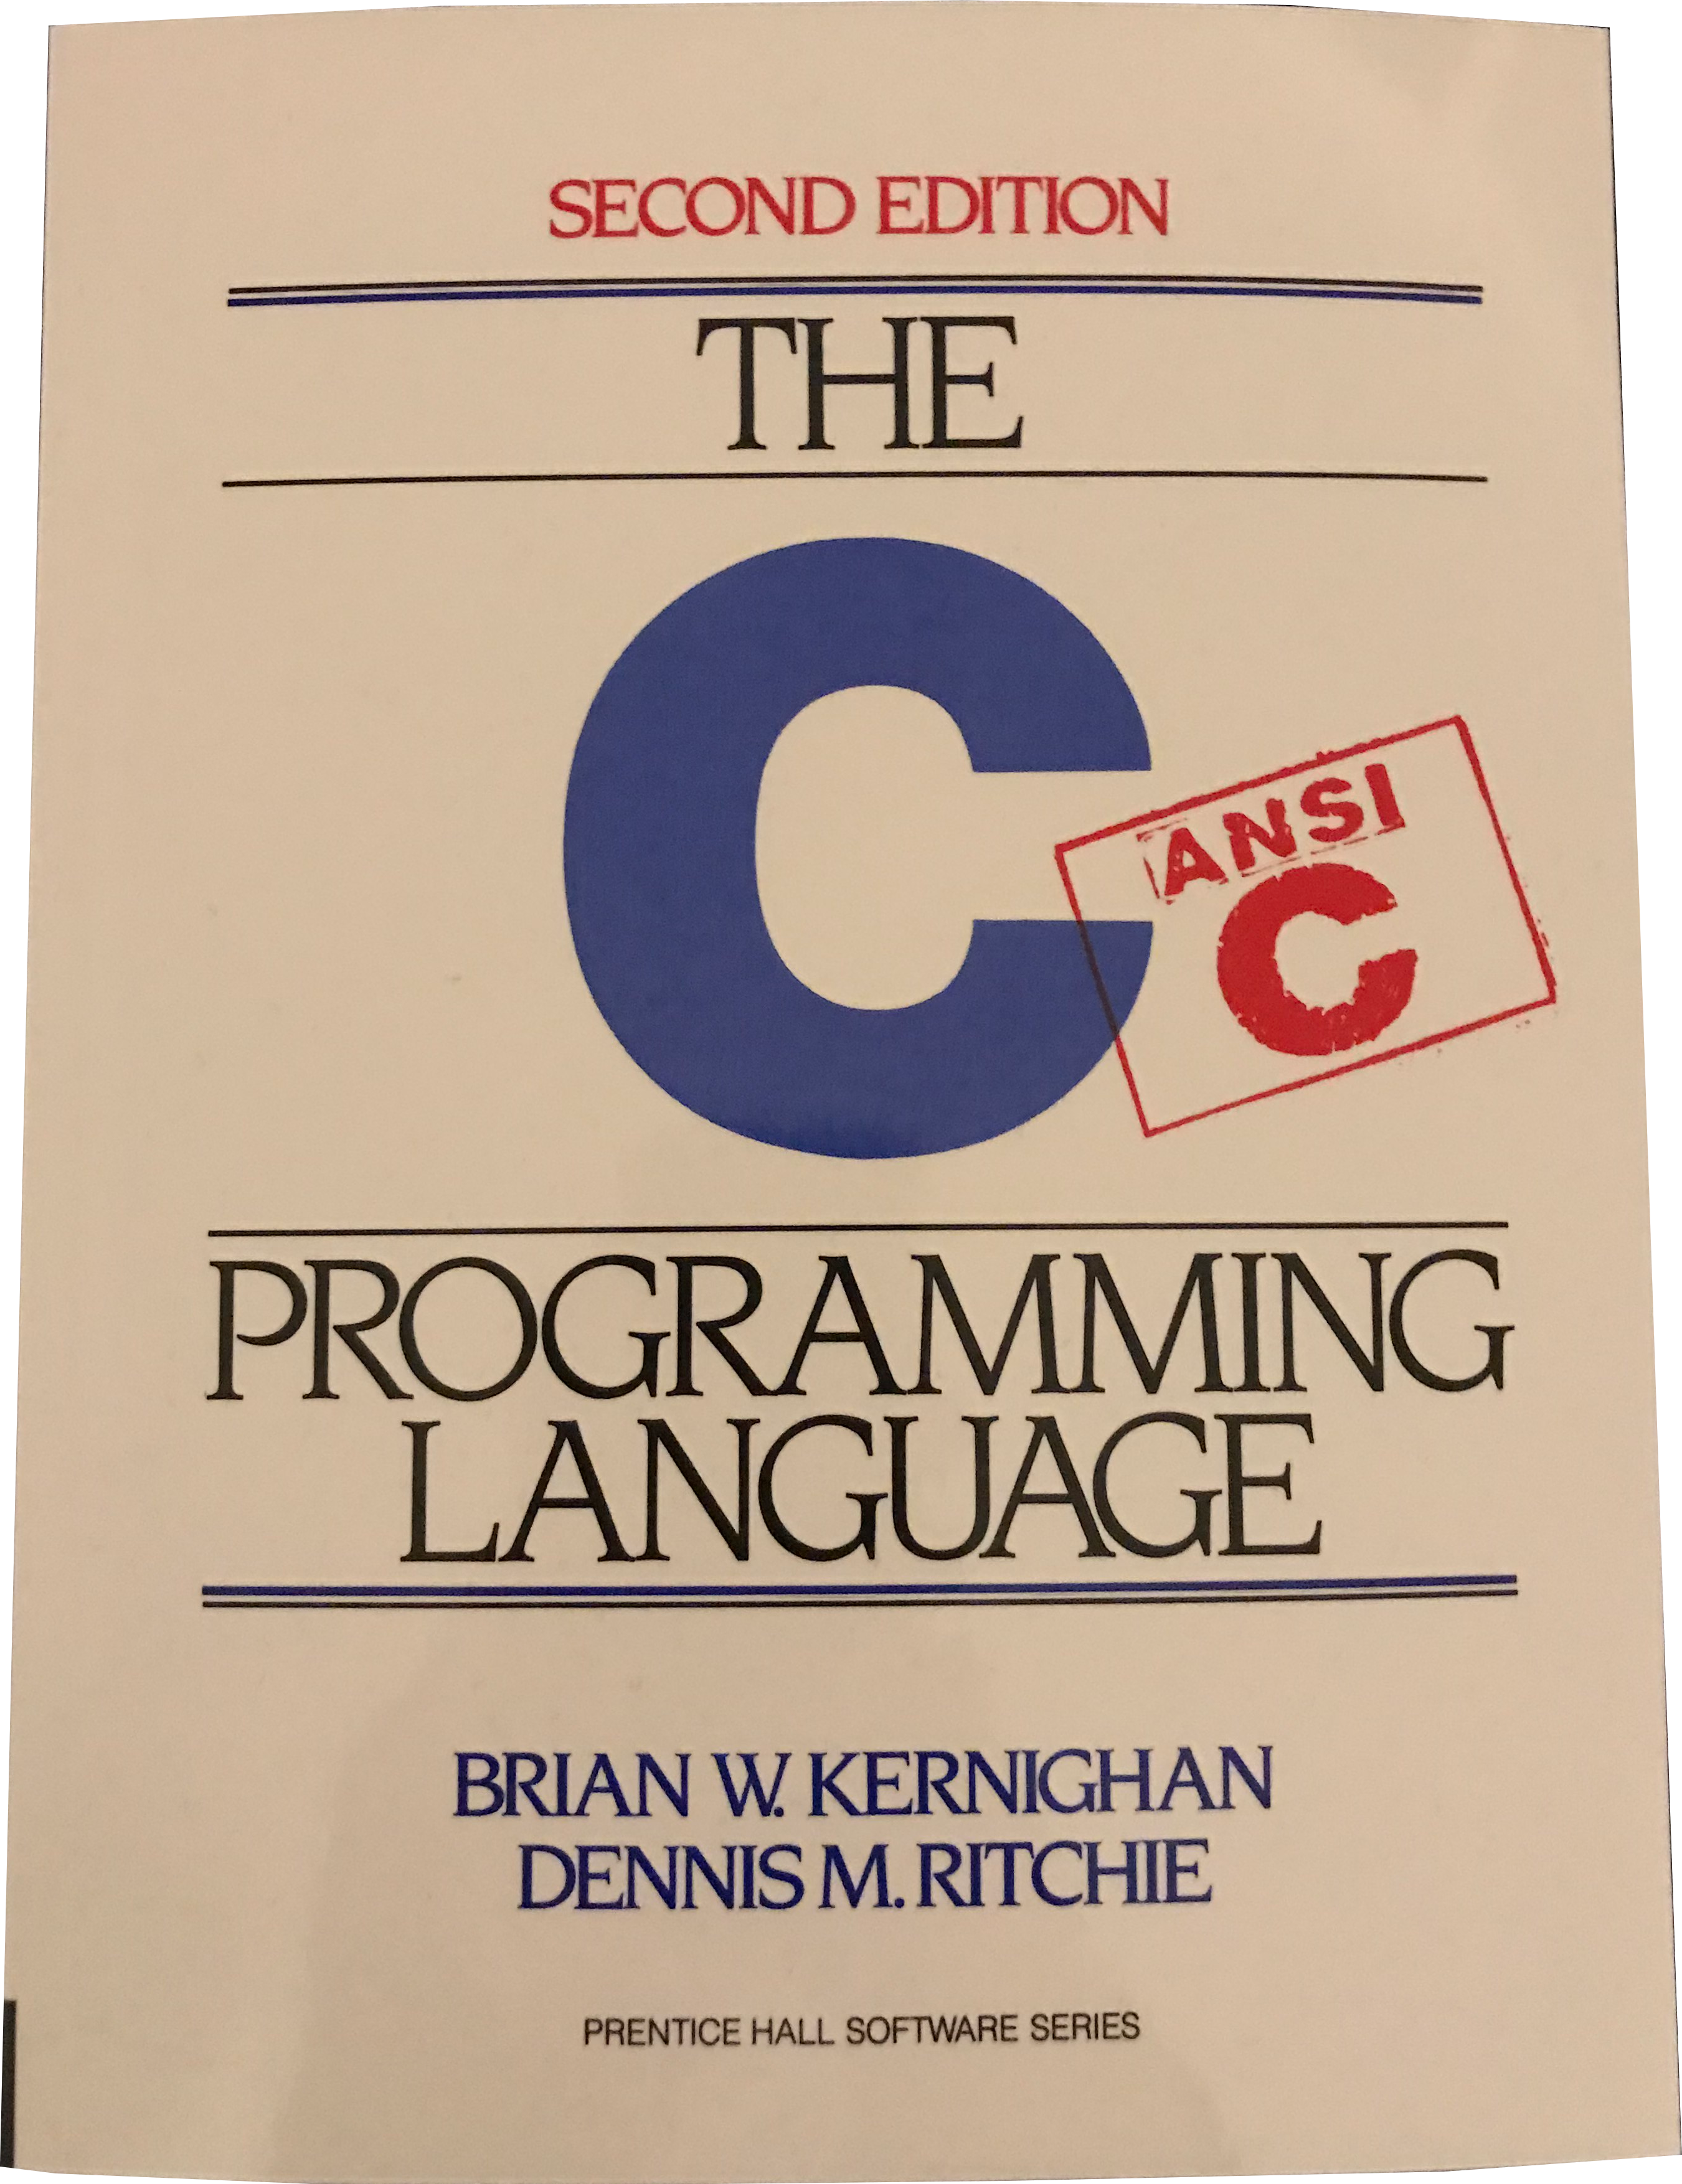 File:The C Programming Language, 2nd Edition.png